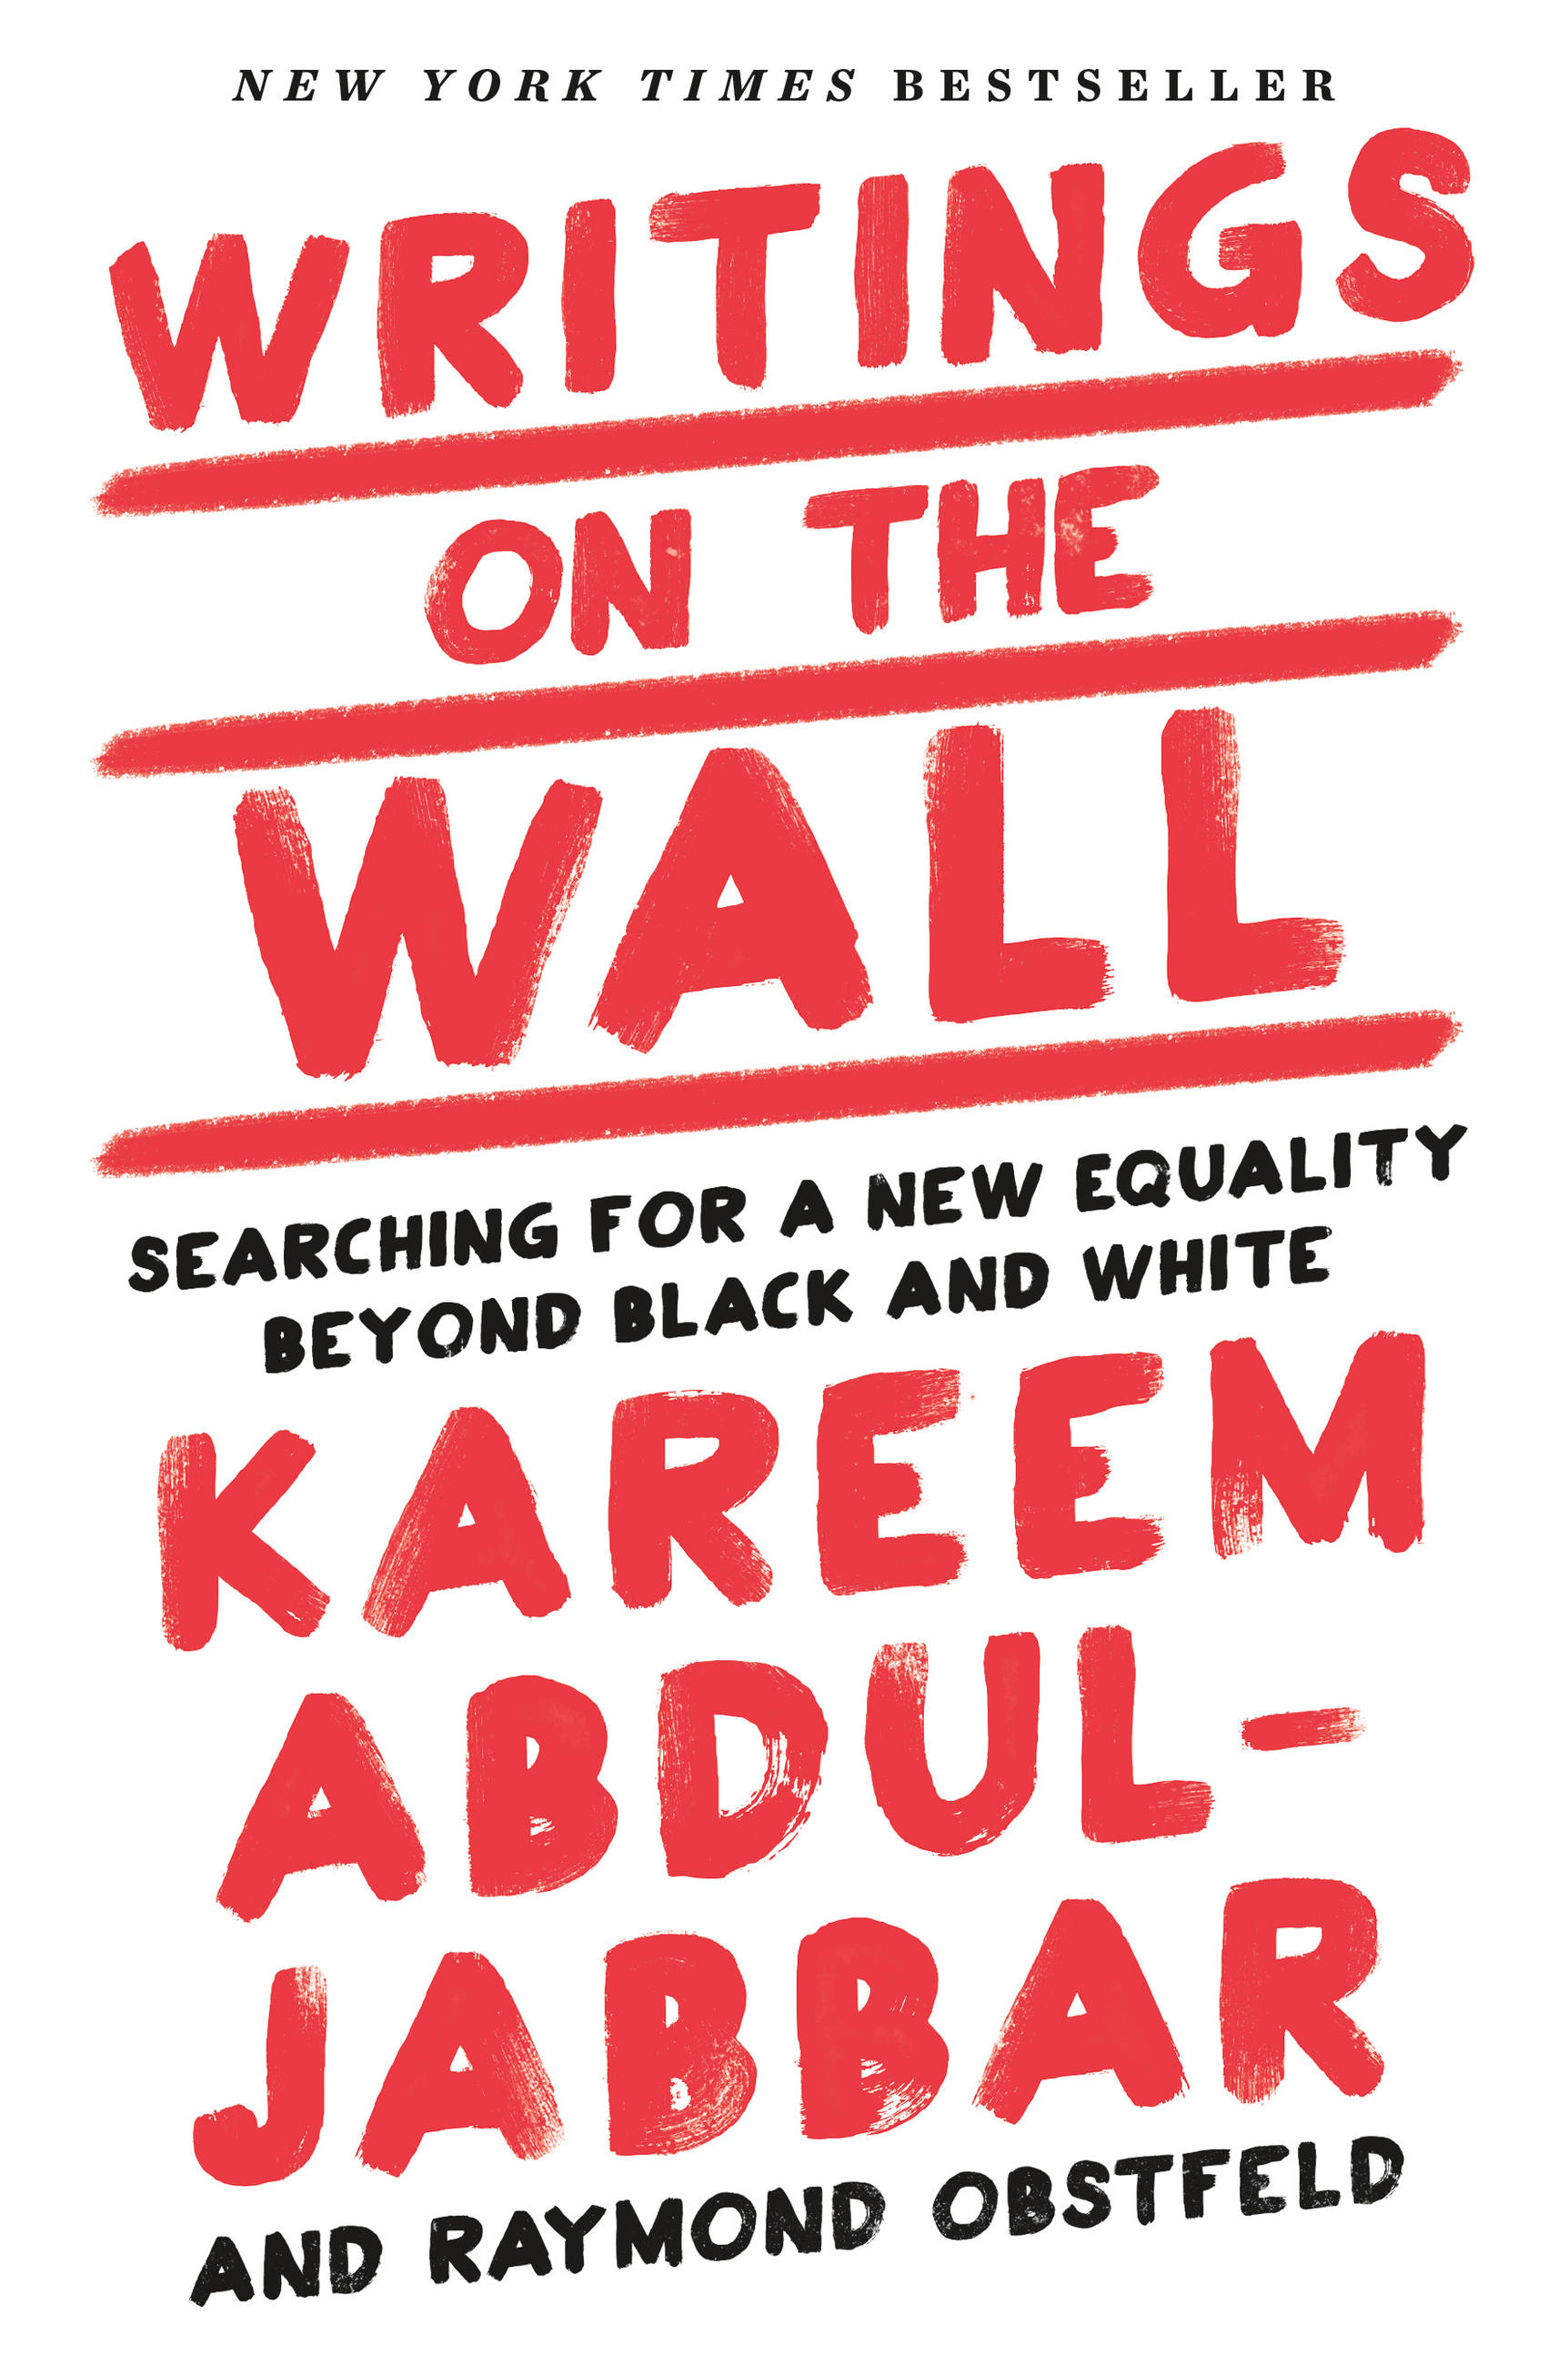 Writings on the wall searching for a new equality beyond black and white